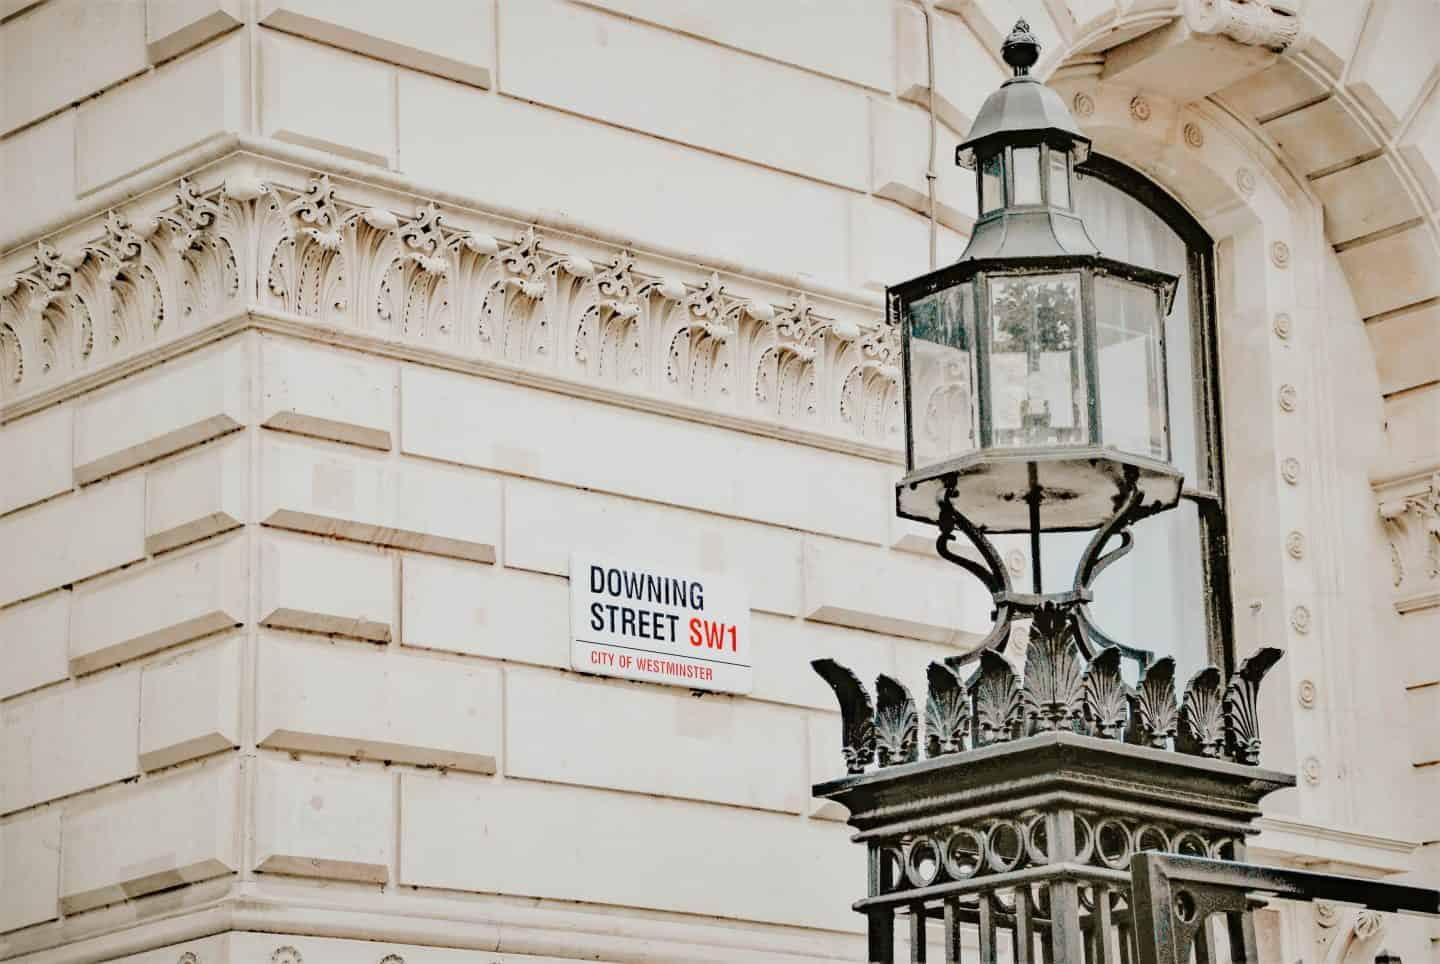 10 Downing Street Love Actually Filming Location